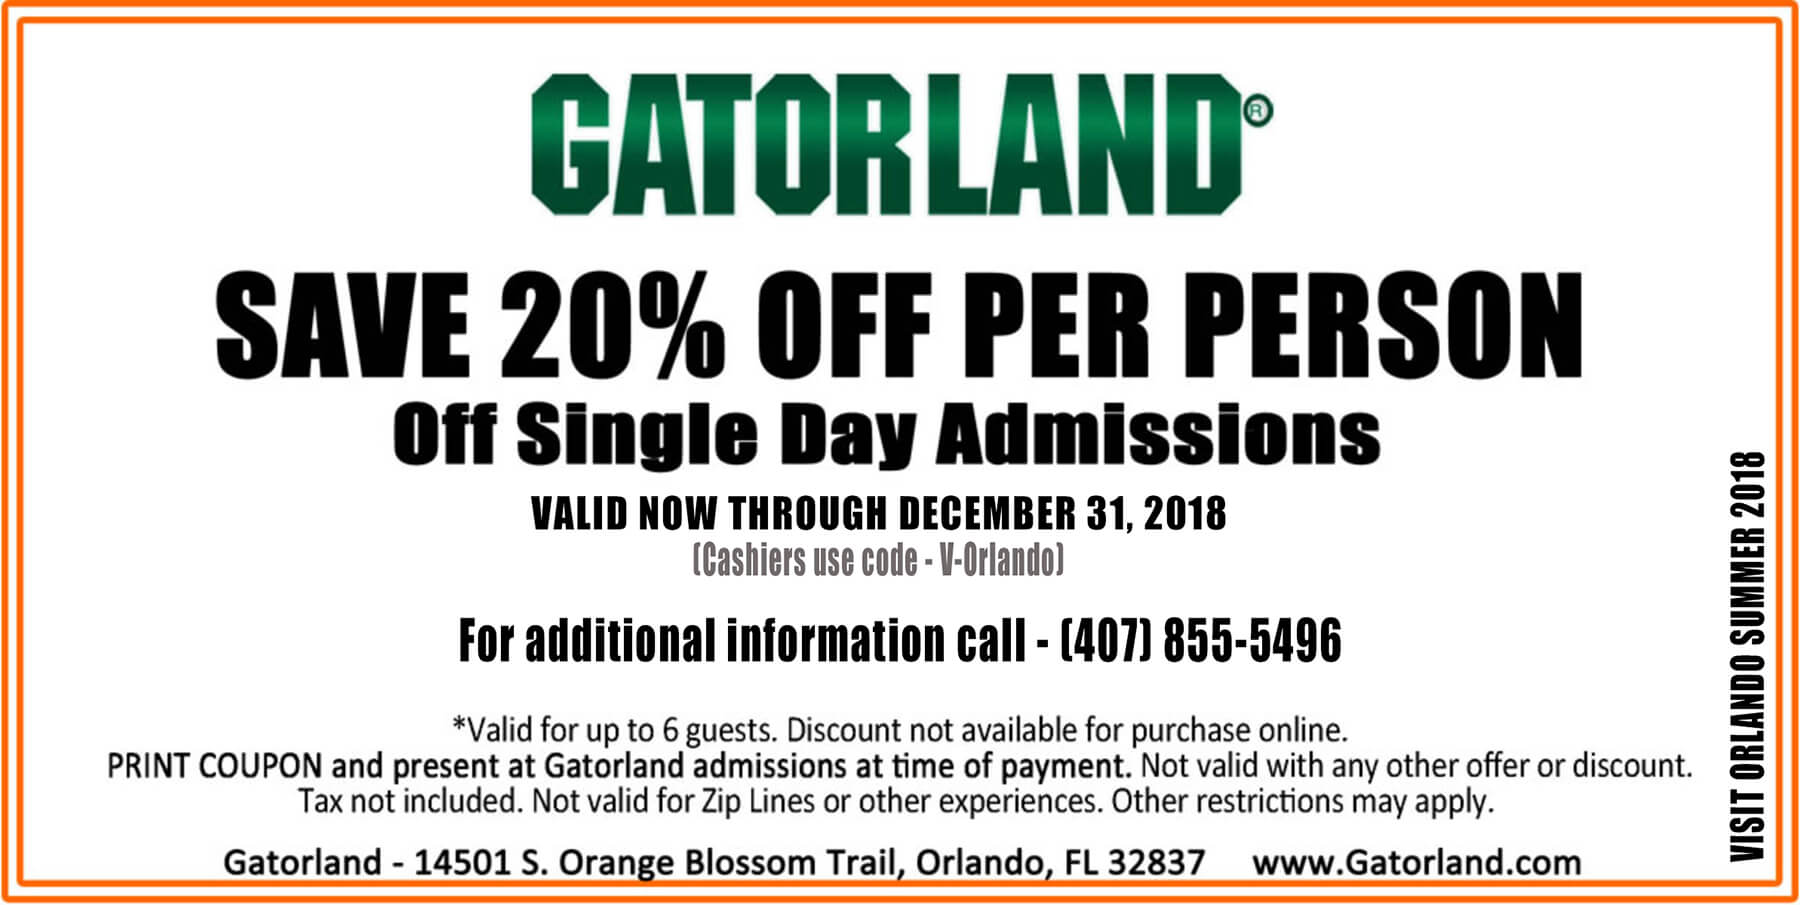 Orlando theme parks discount coupons